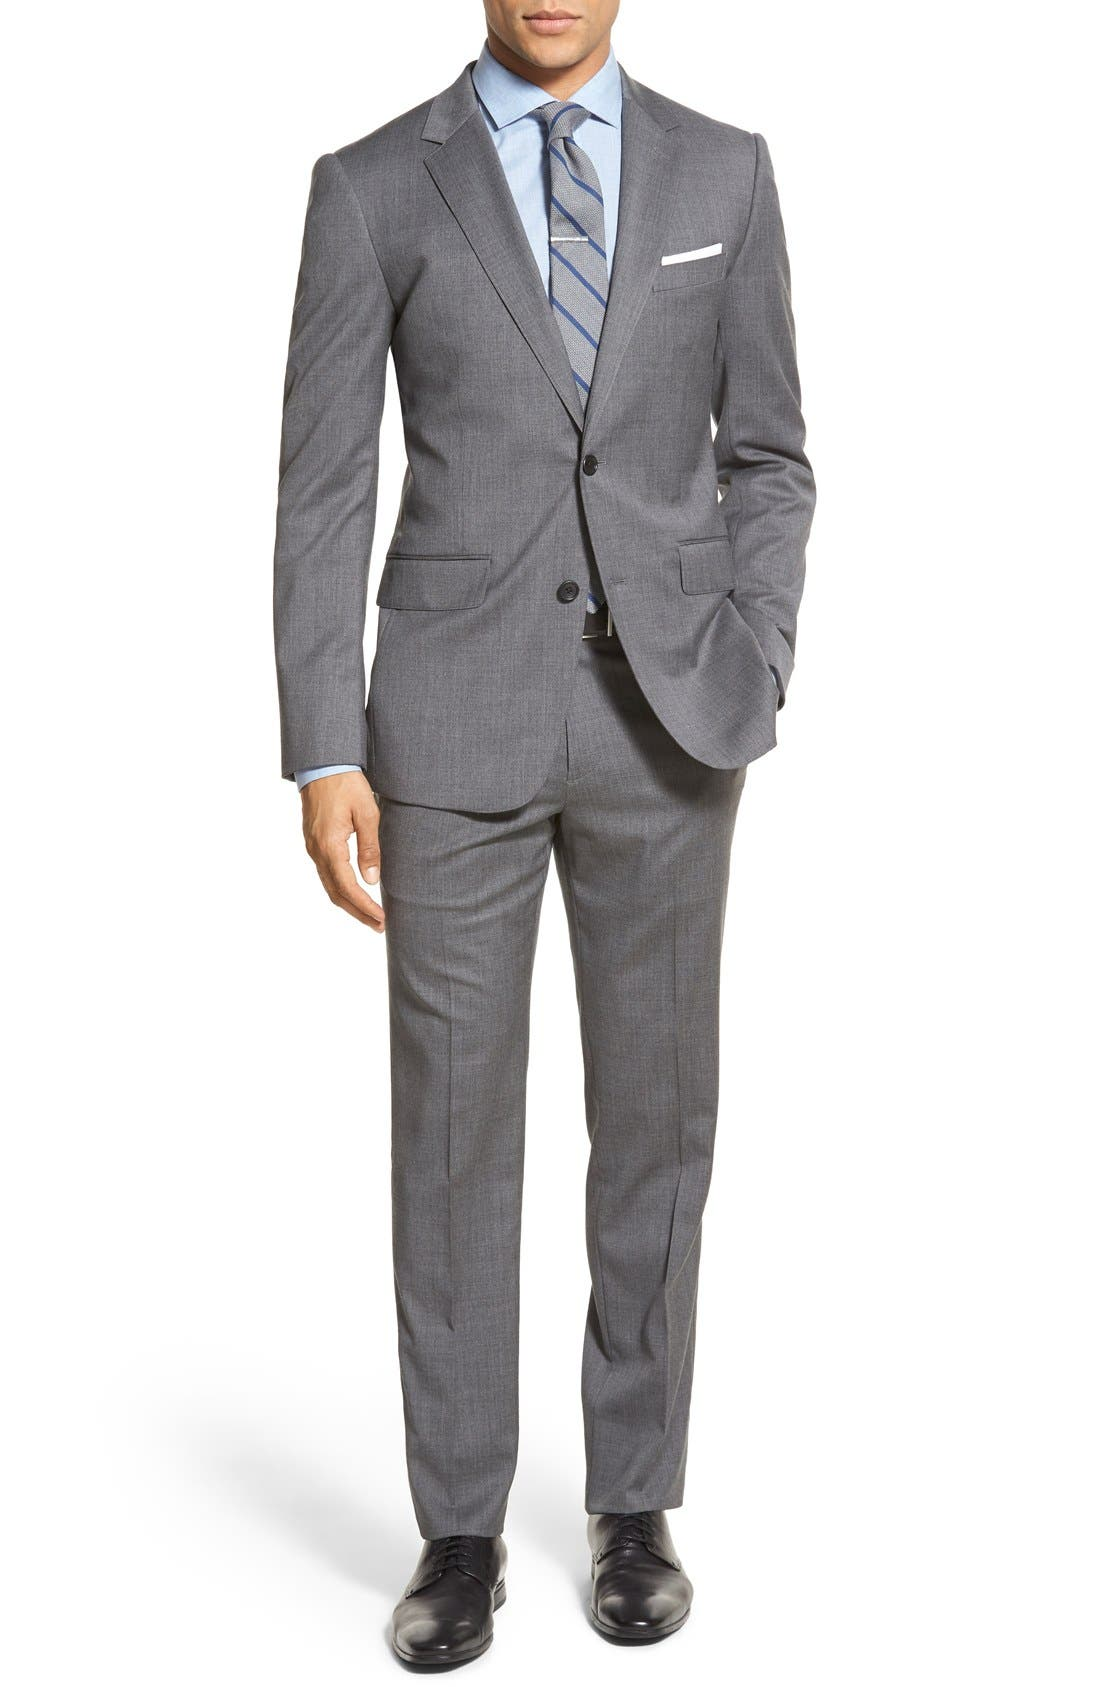 Bonobos 'Jetsetter' Trim Fit Solid Stretch Jacket & Trousers